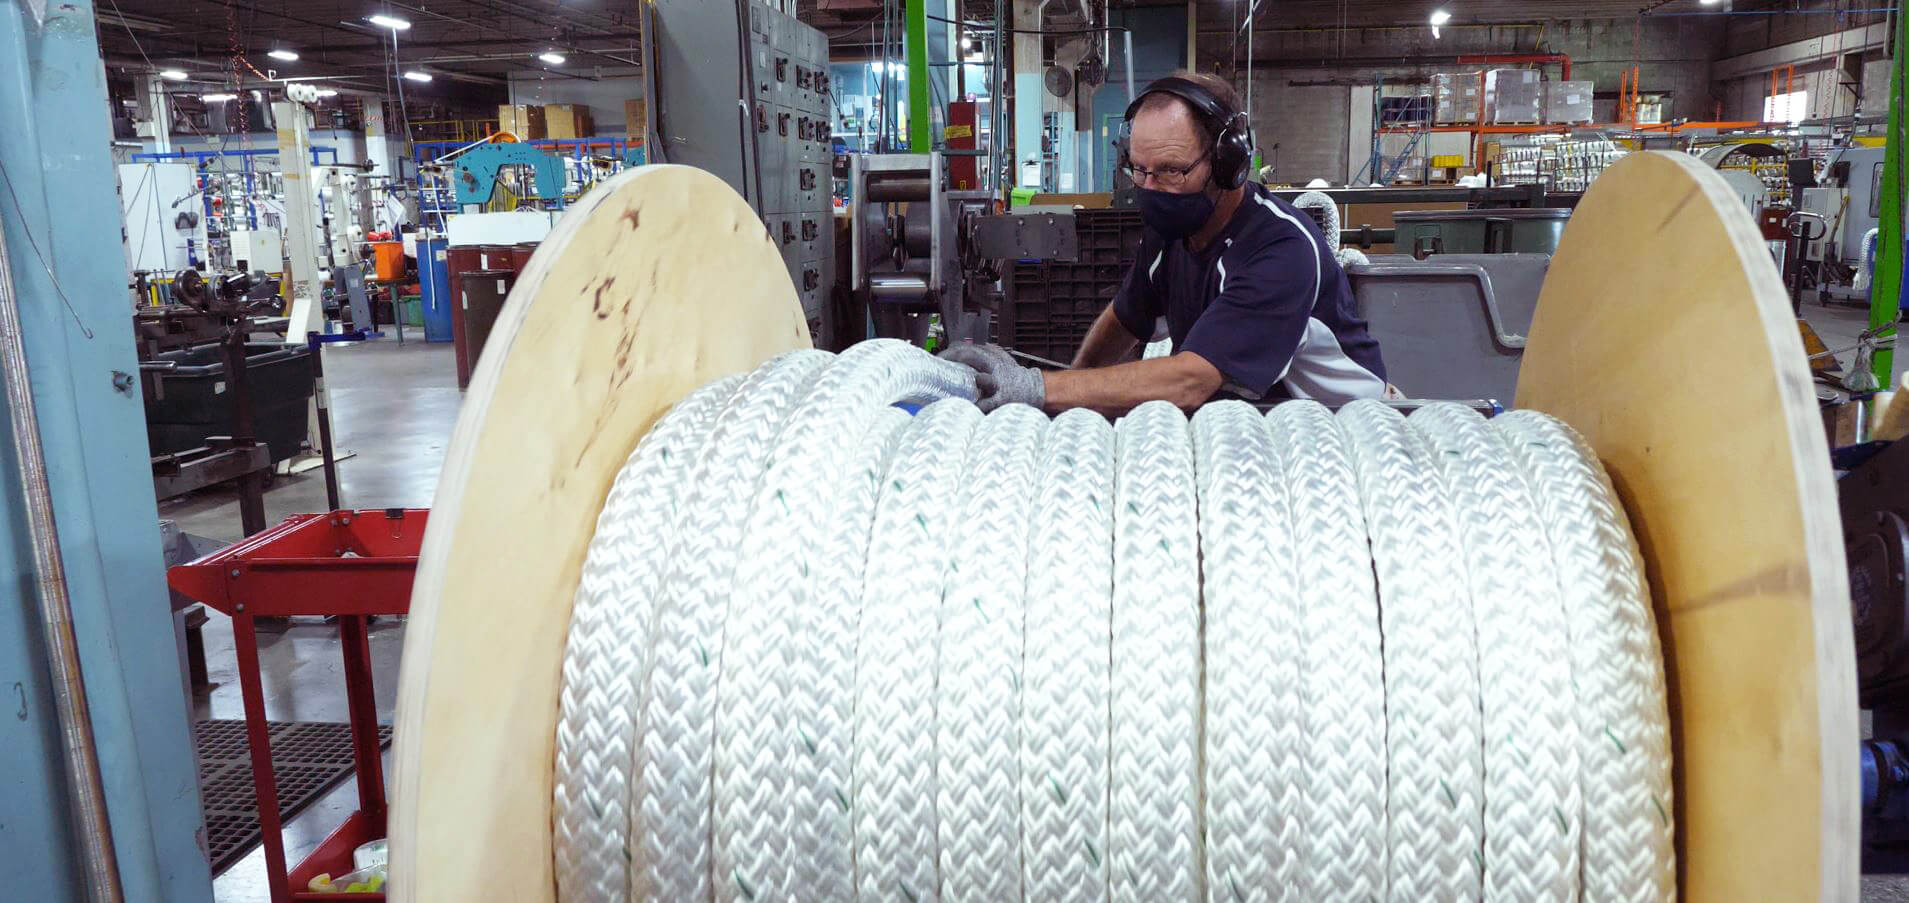 Spooling rope in the Orion Cordage warehouse